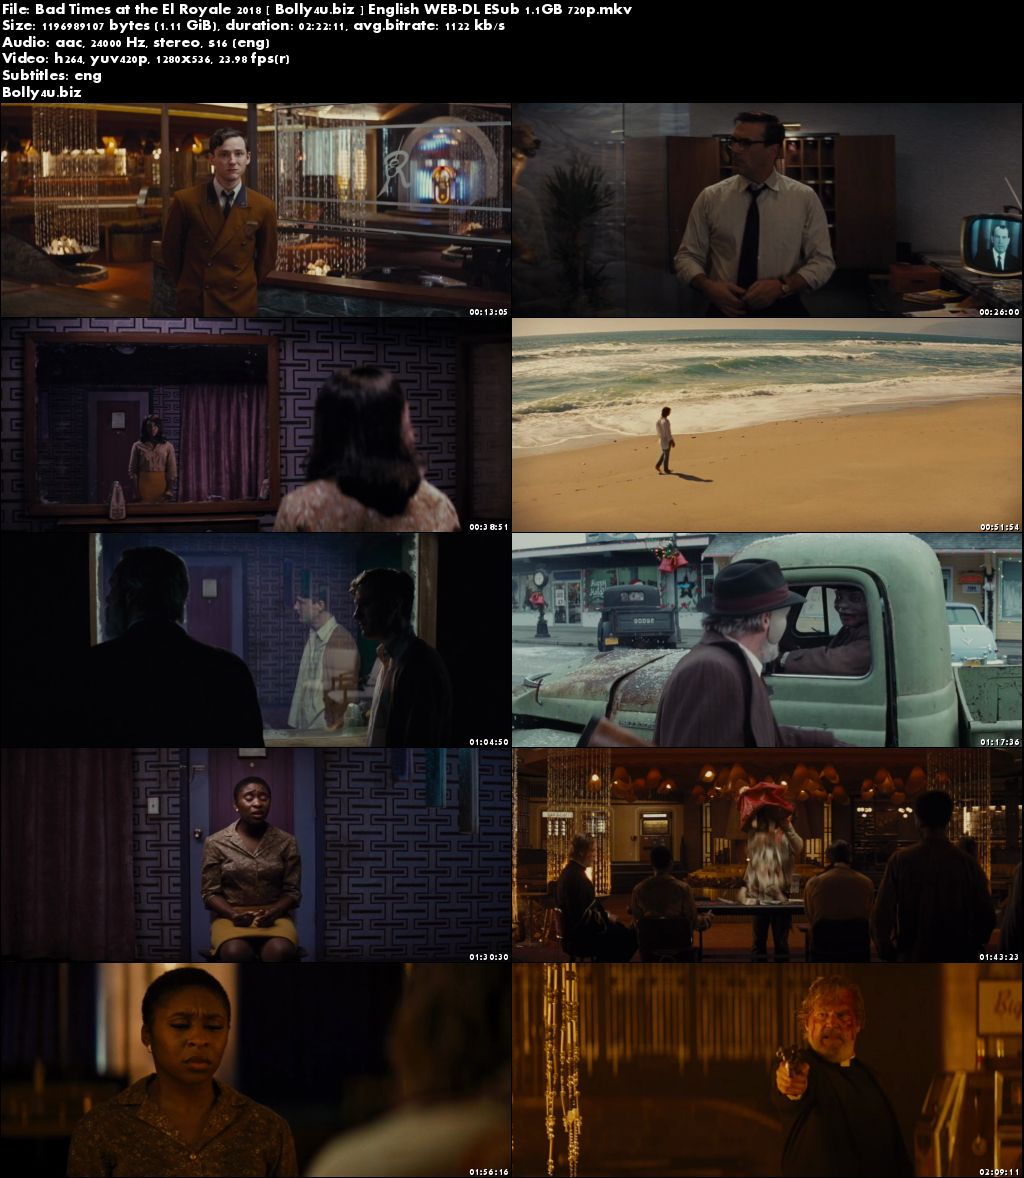 Bad Times at the El Royale 2018 WEB-DL 350Mb English 480p ESub Download